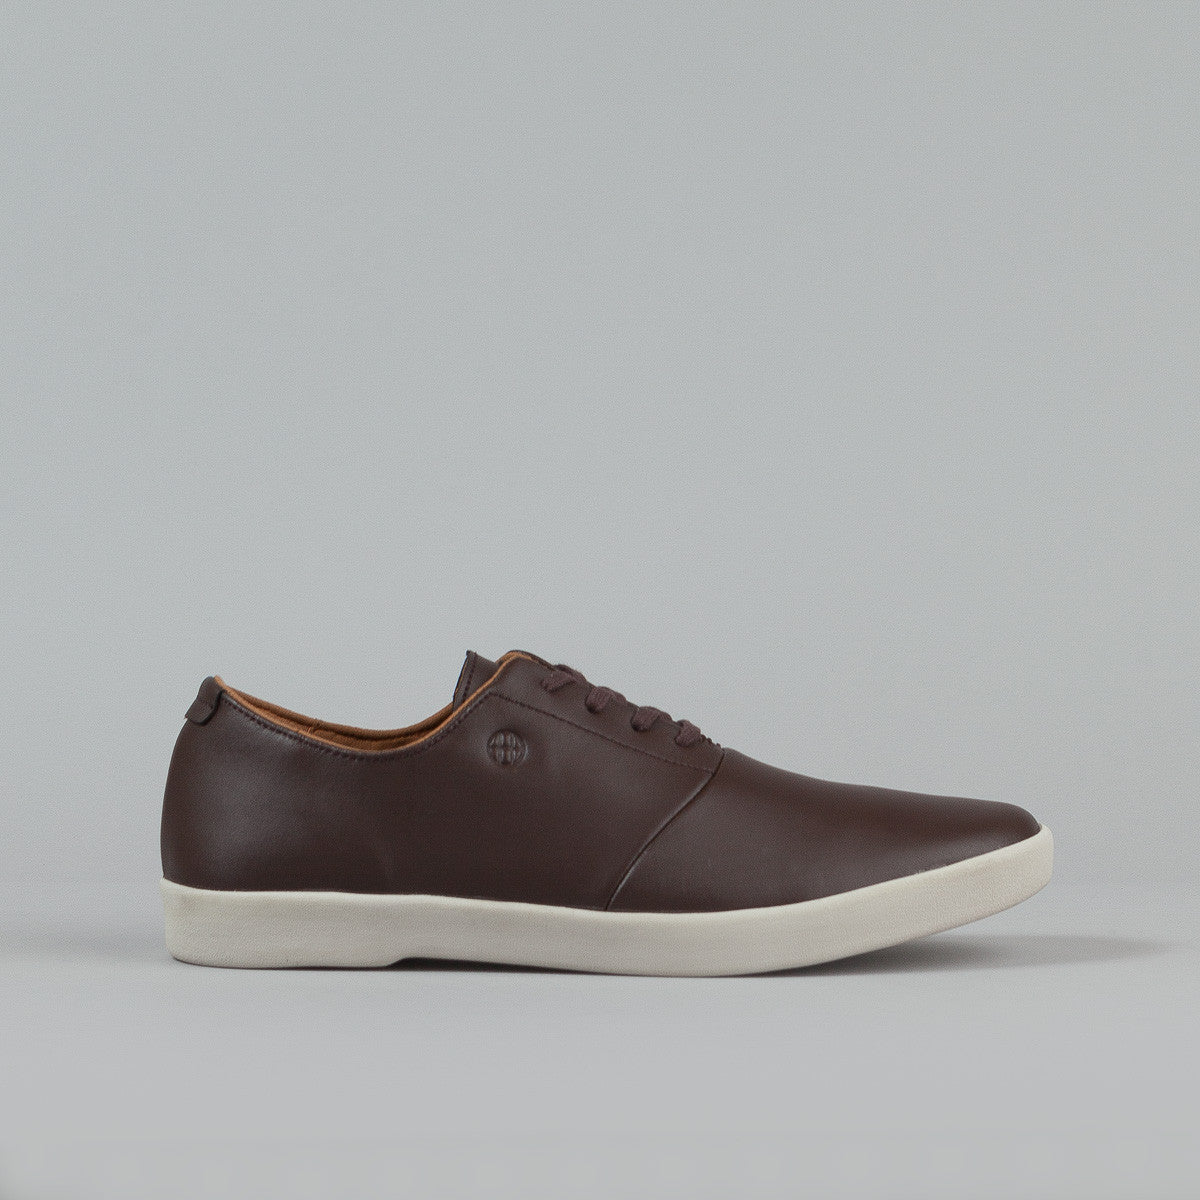 Huf Gillette Shoes